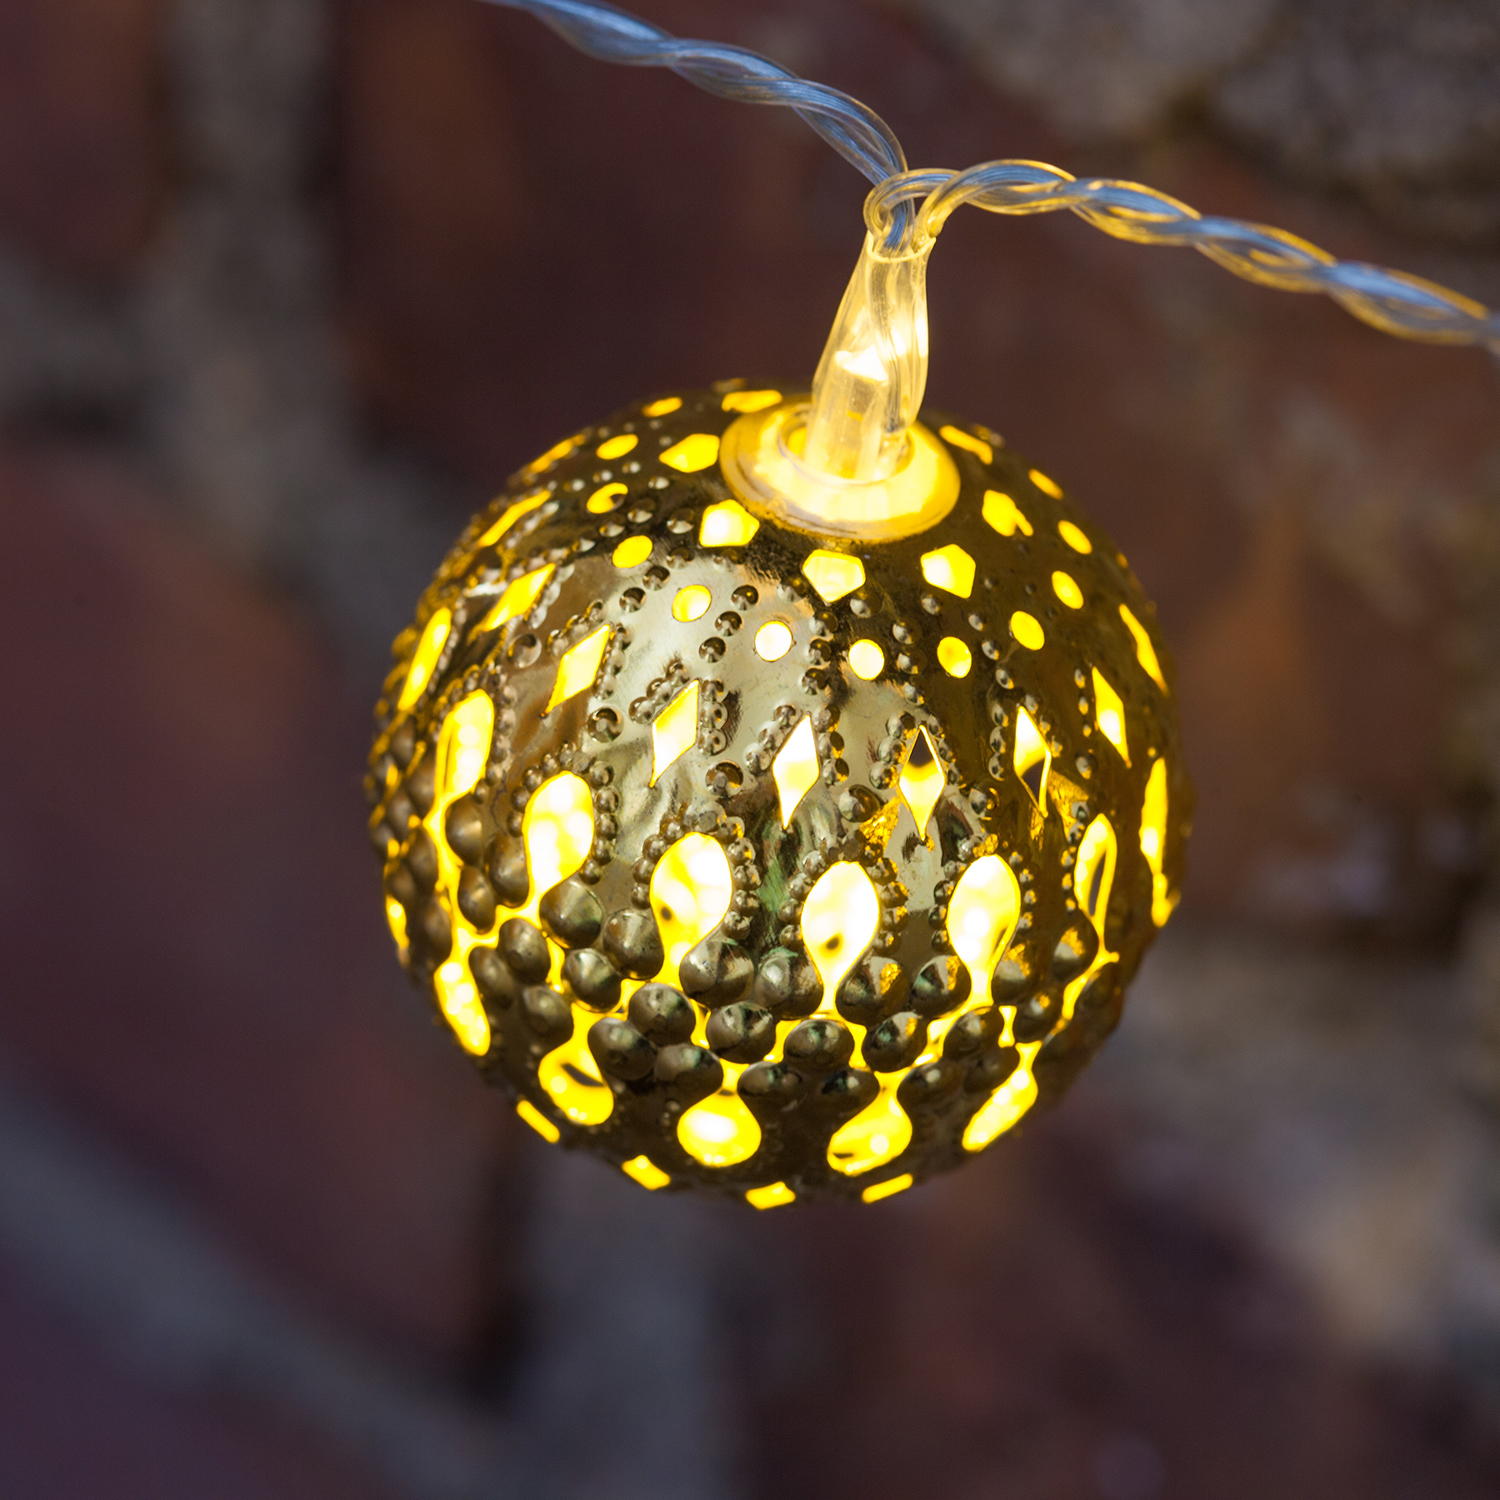 Lights.com Lit Decor String Lights Decorative Gold Moroccan Bauble Battery Operated ...